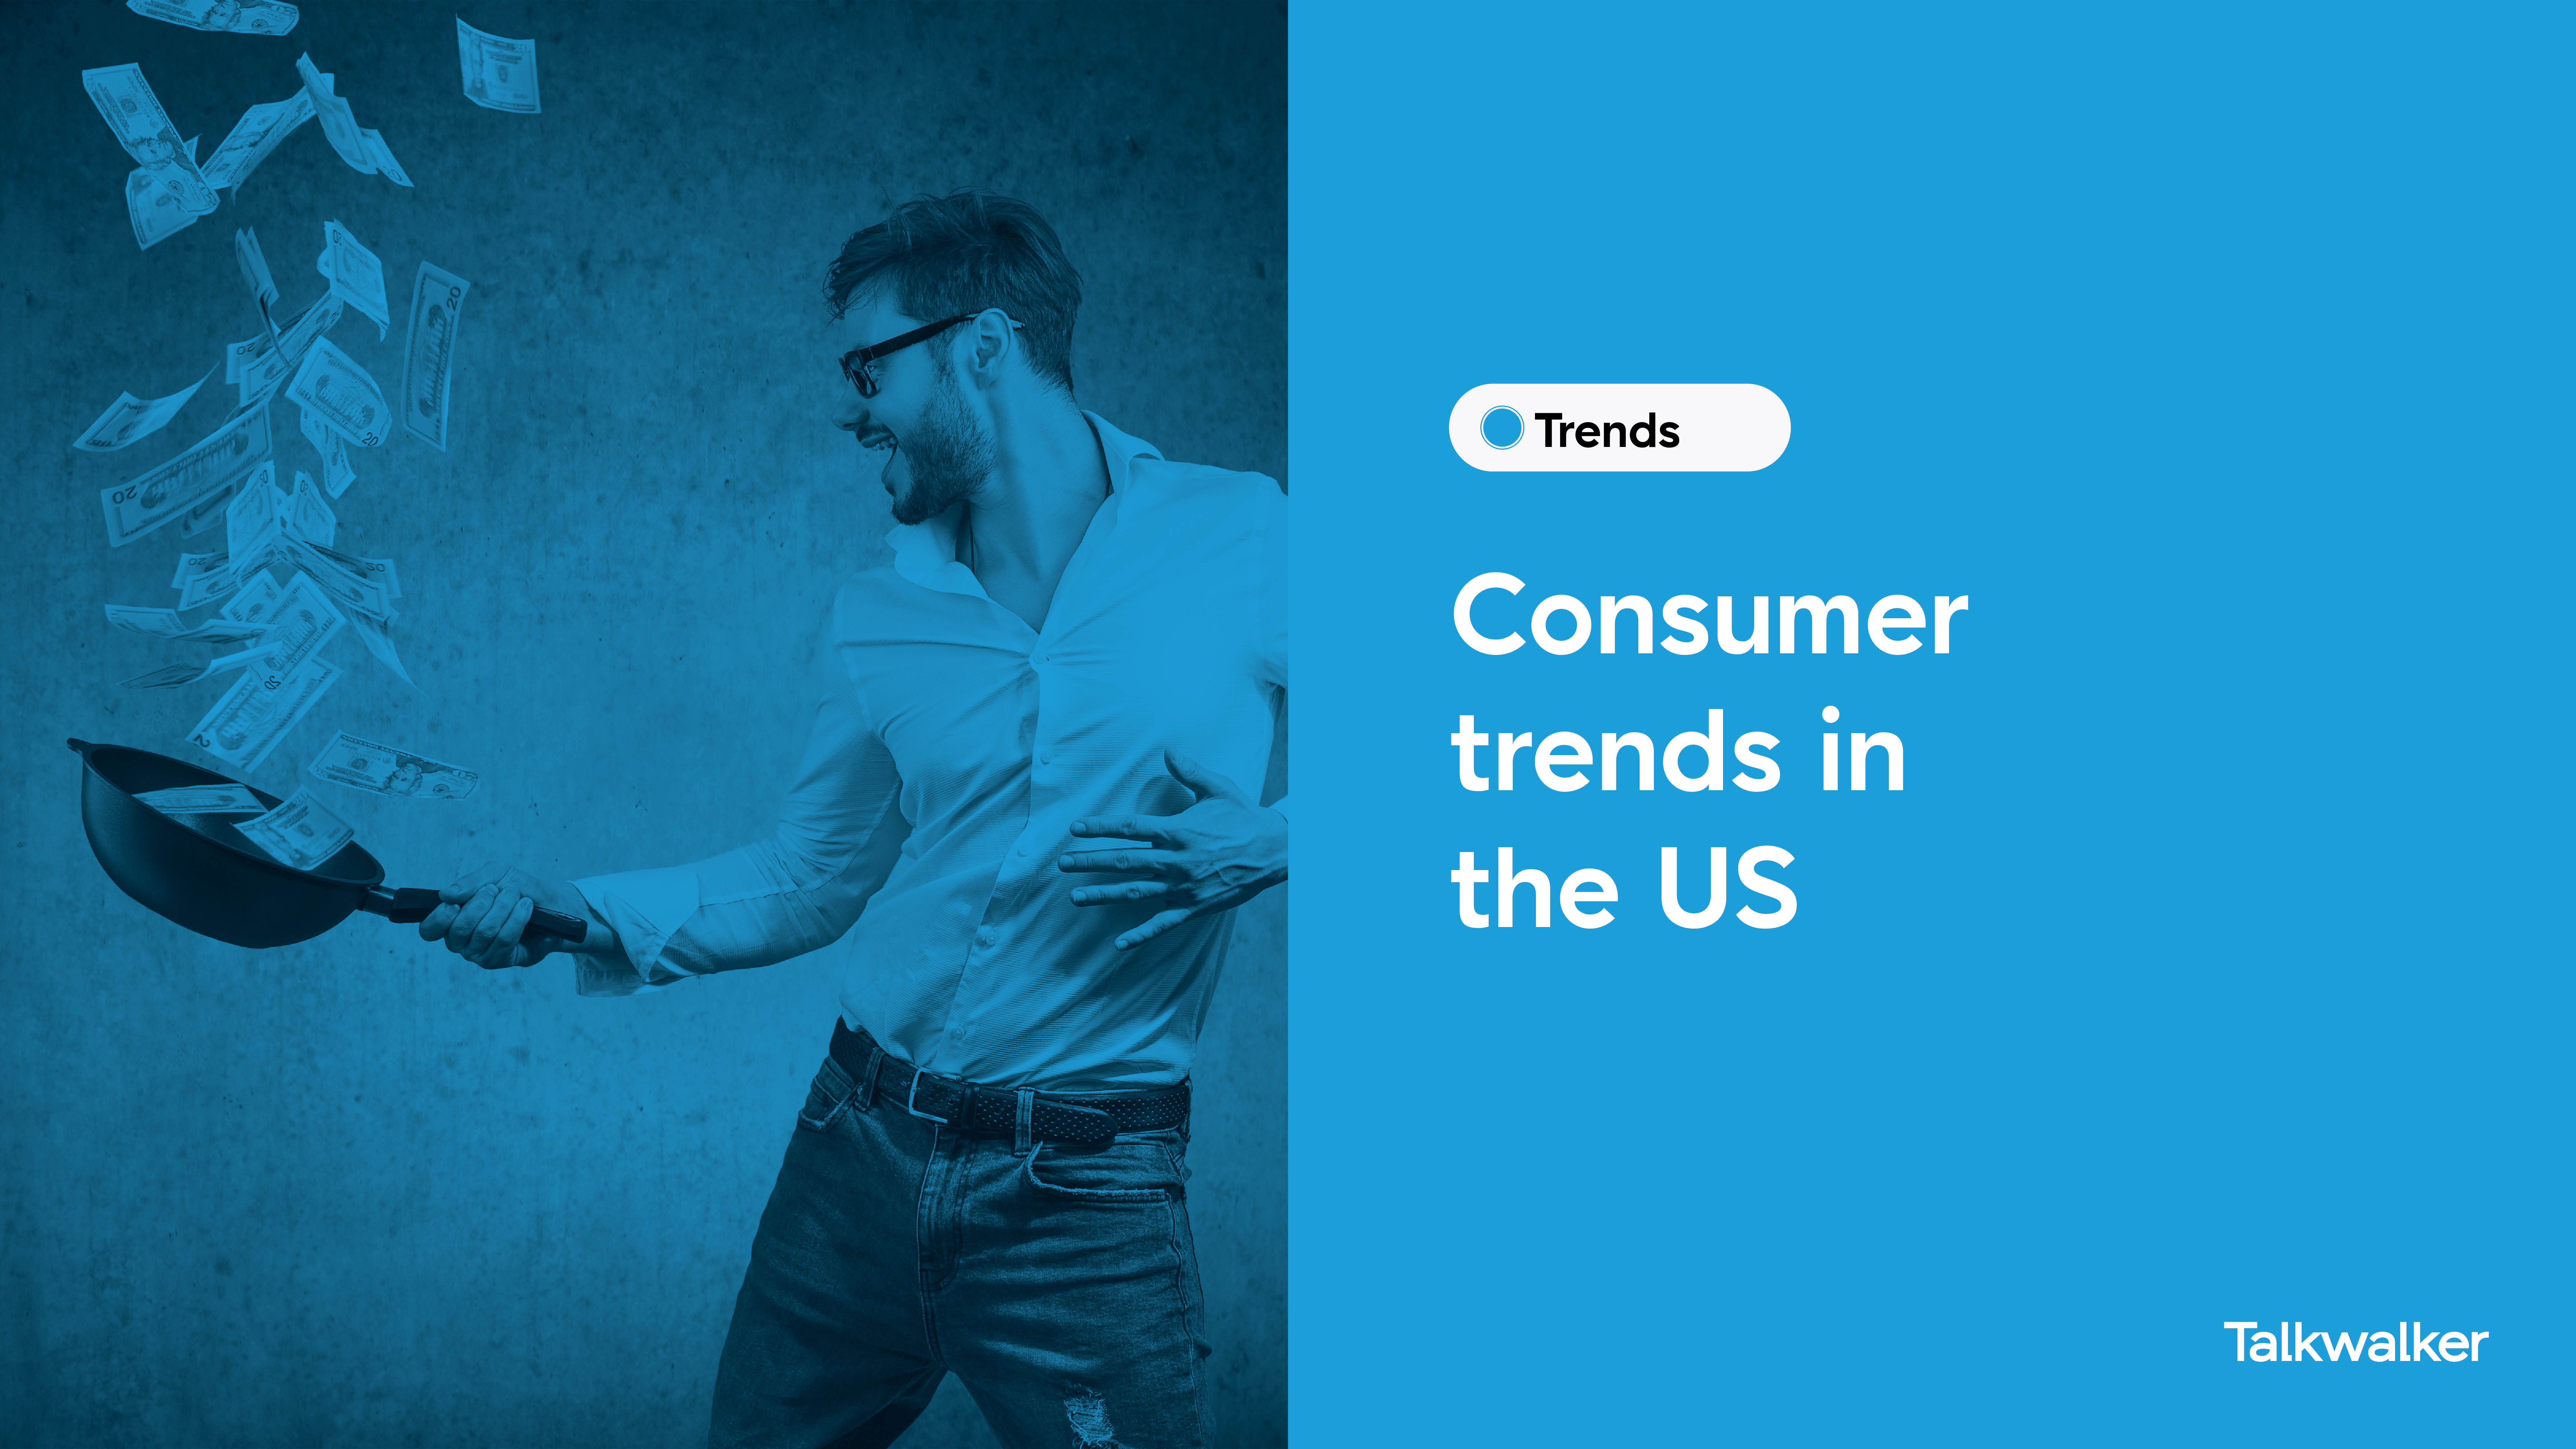 """The image reads """"Consumer trends in the US"""" and shows a man cooking over a frying pan with dollar bills raining down, meant to represent the US economy which is about to start heating up."""